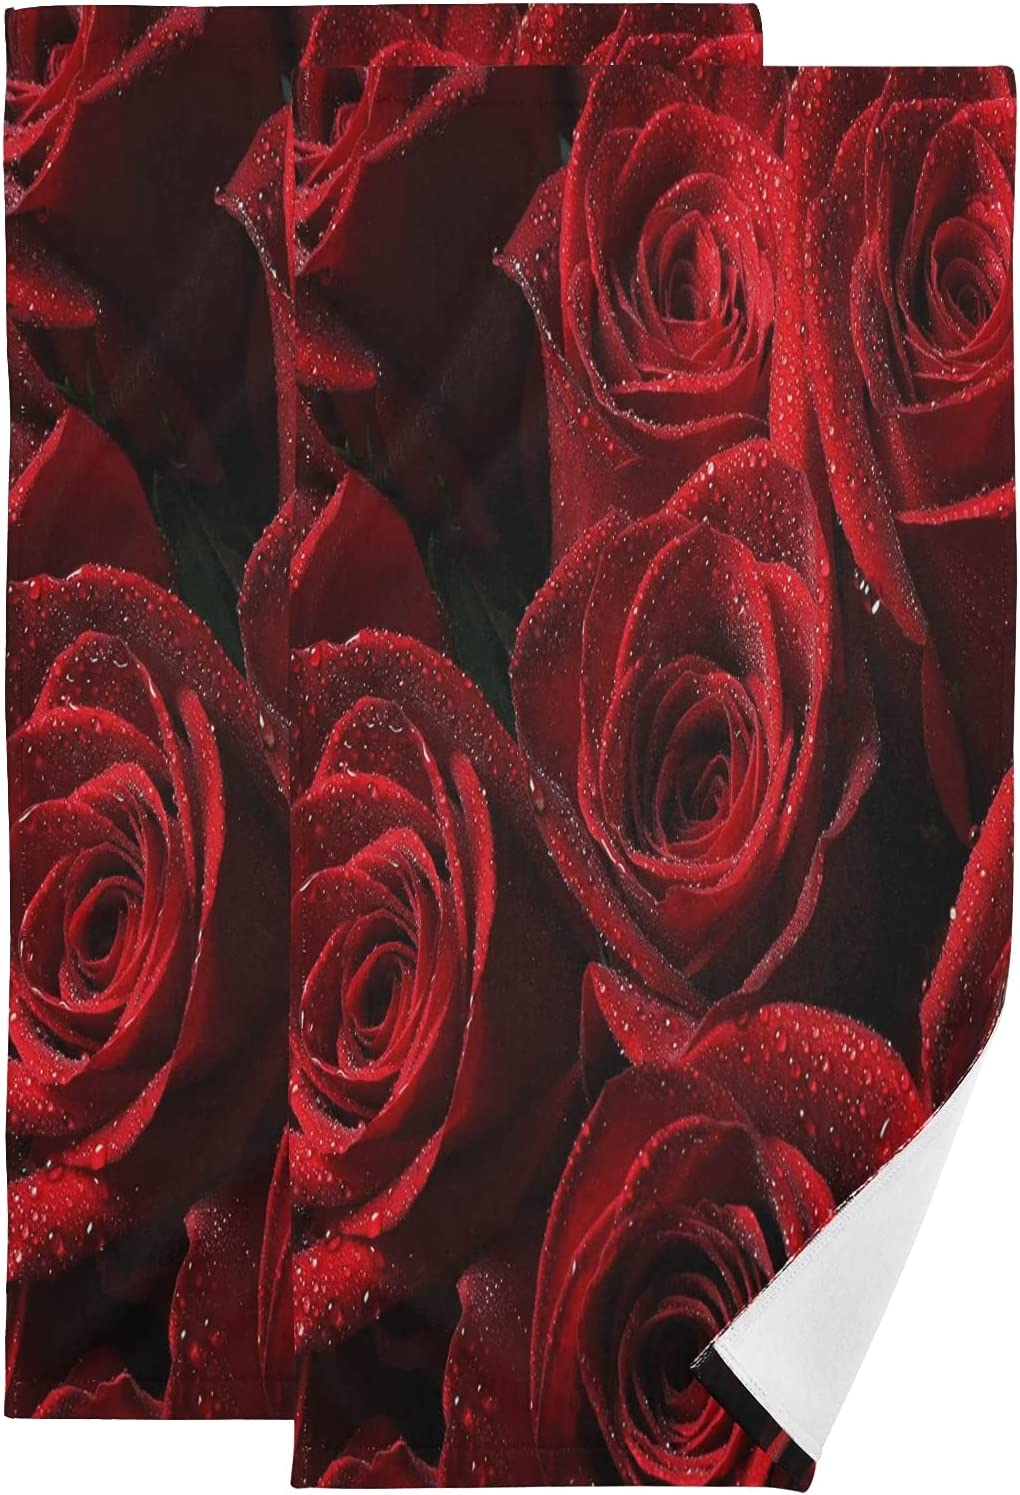 ALAZA Red Rose Hand Towels Bath Soft Ranking TOP10 Decorative Absorbent store